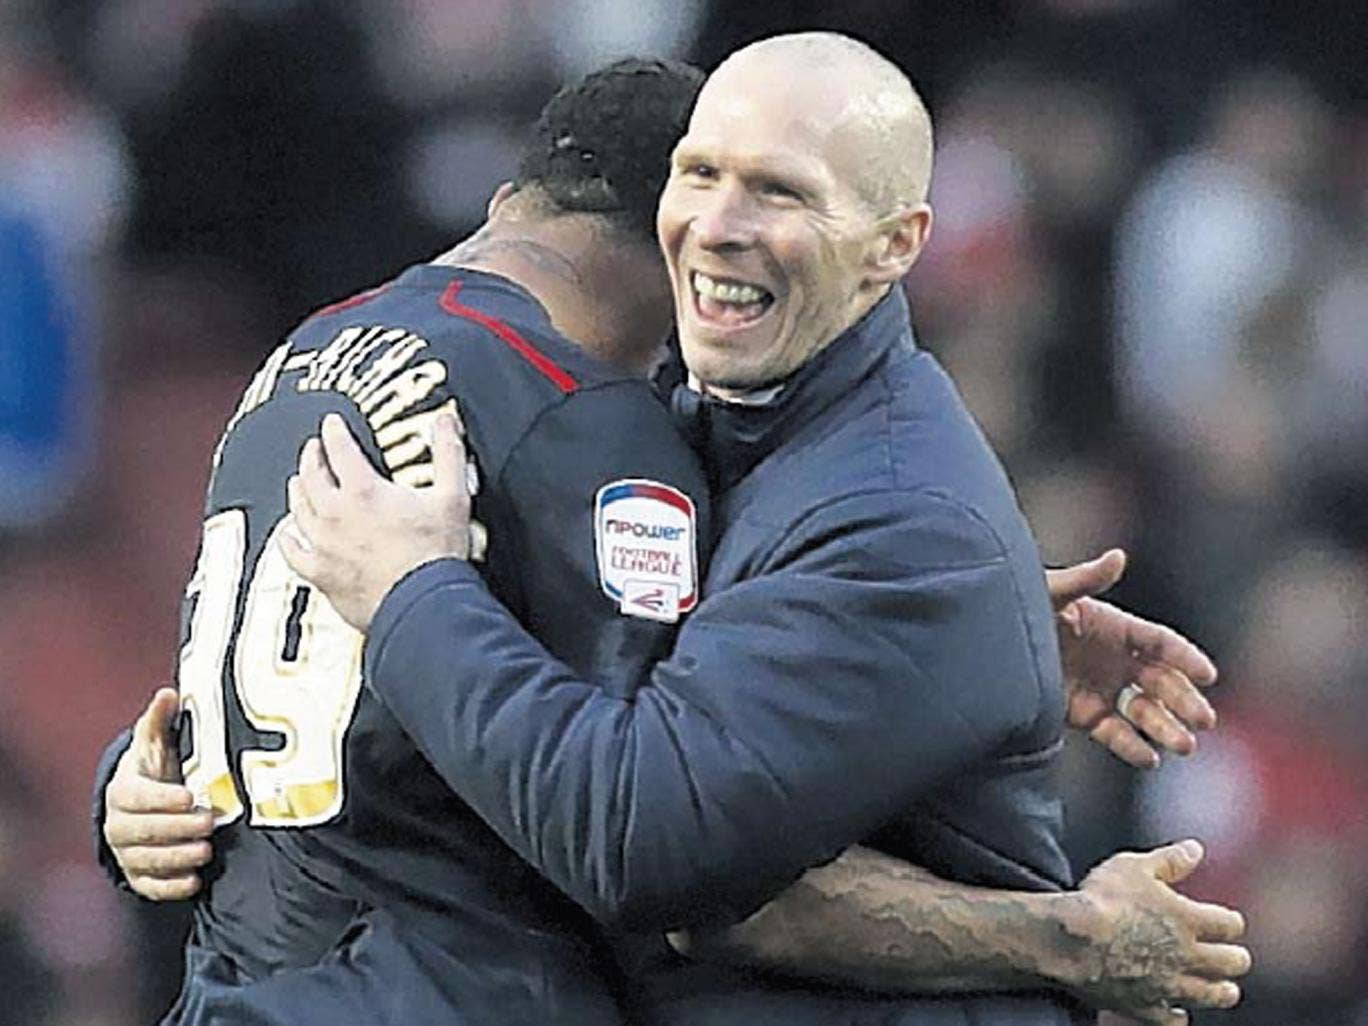 The Blackburn Rovers manager, Michael Appleton, celebrates their shock victory with goalscorer Colin Kazim-Richards